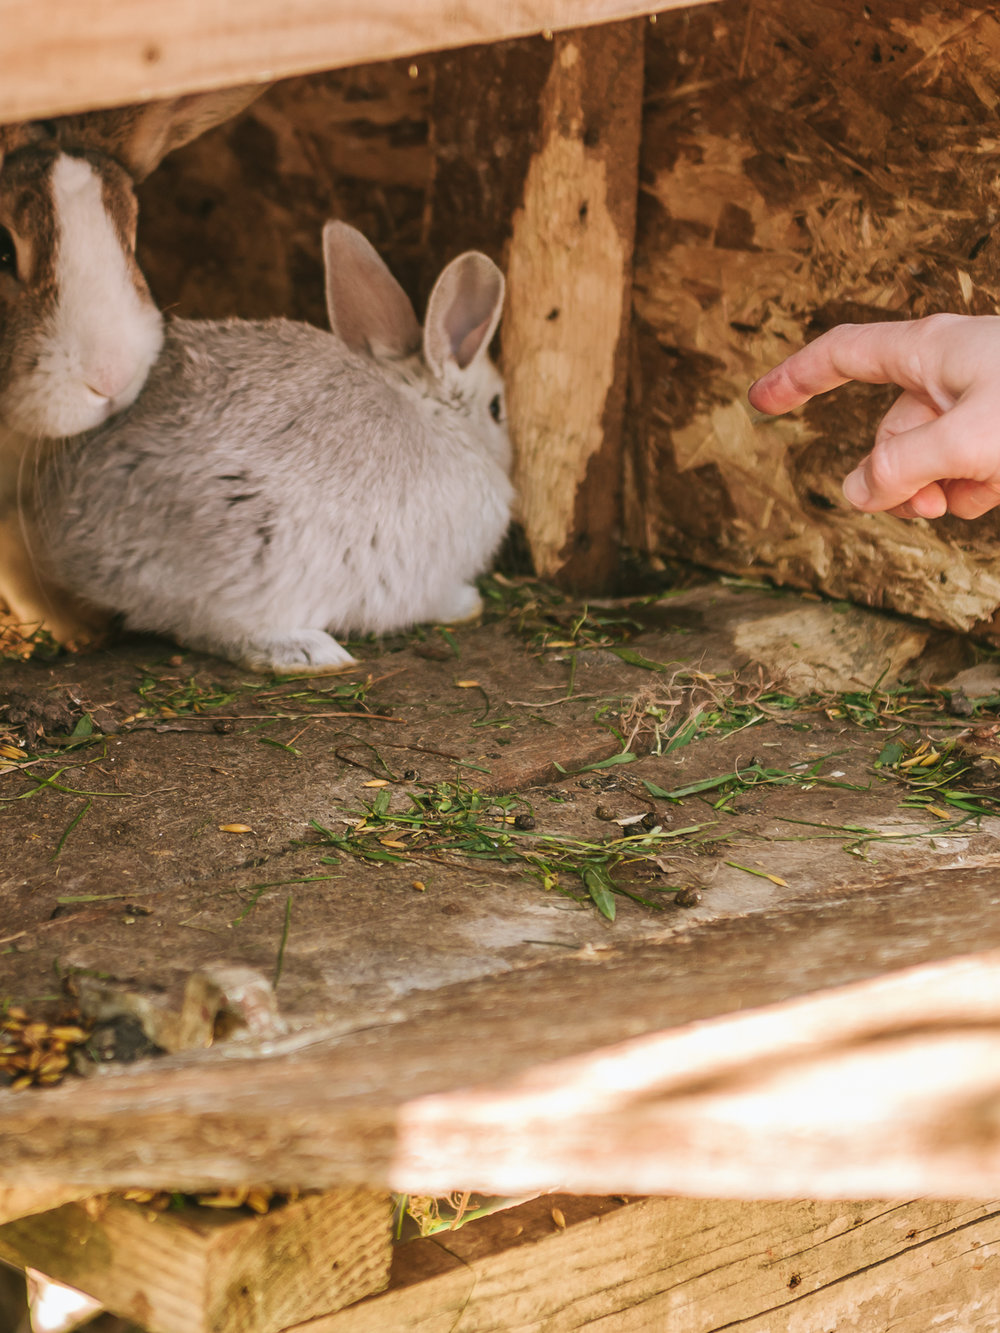 Some rabbits at the OK Corral Farmstay in Montenegro.